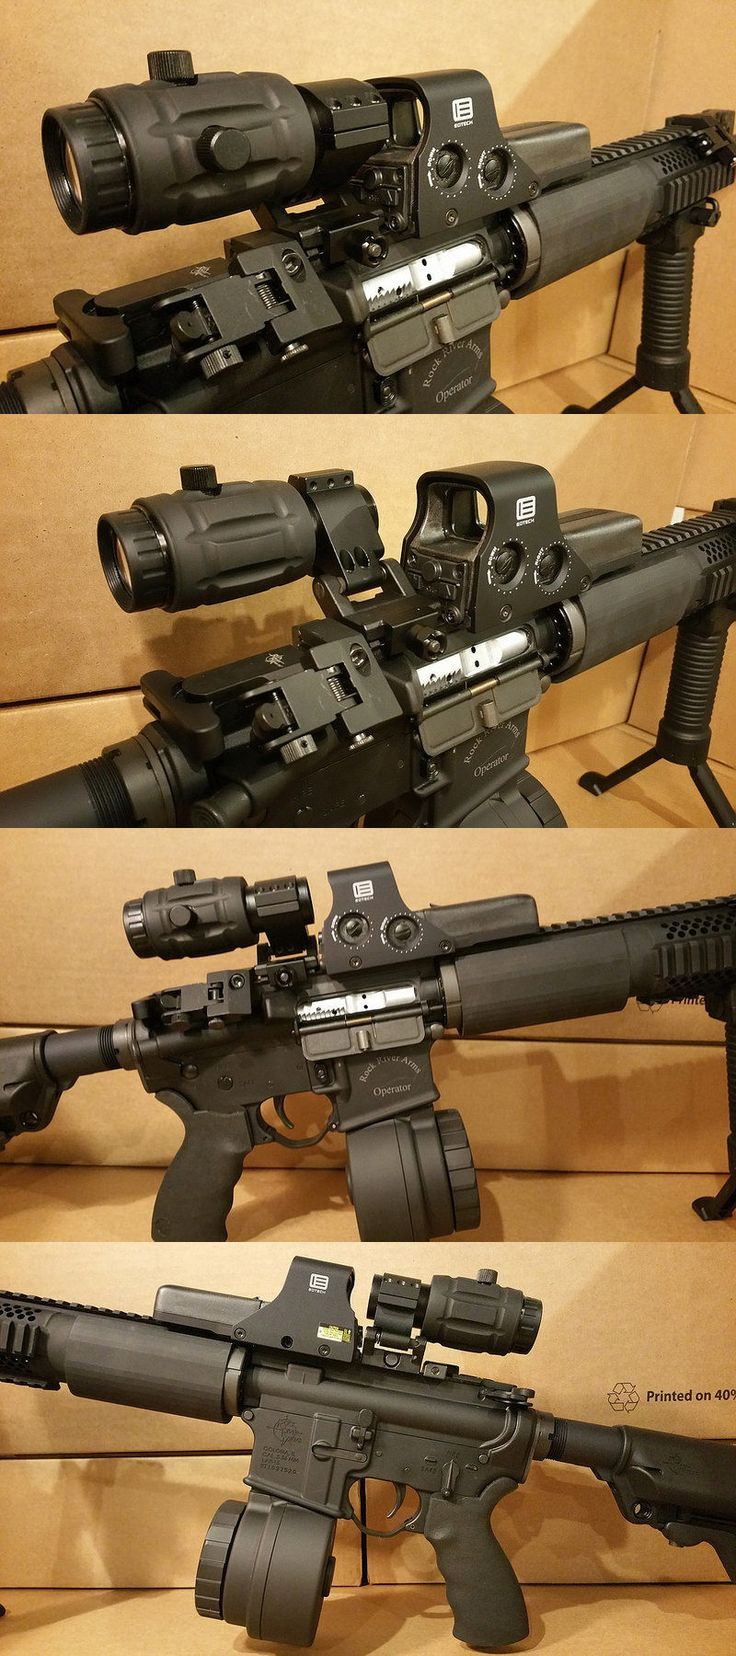 Red Dot and Laser Scopes 66827: Eotech 512 W 3X Vector Optics Magnifier Flip Mount Red Dot Sight Rifle Scope -> BUY IT NOW ONLY: $549.99 on eBay!